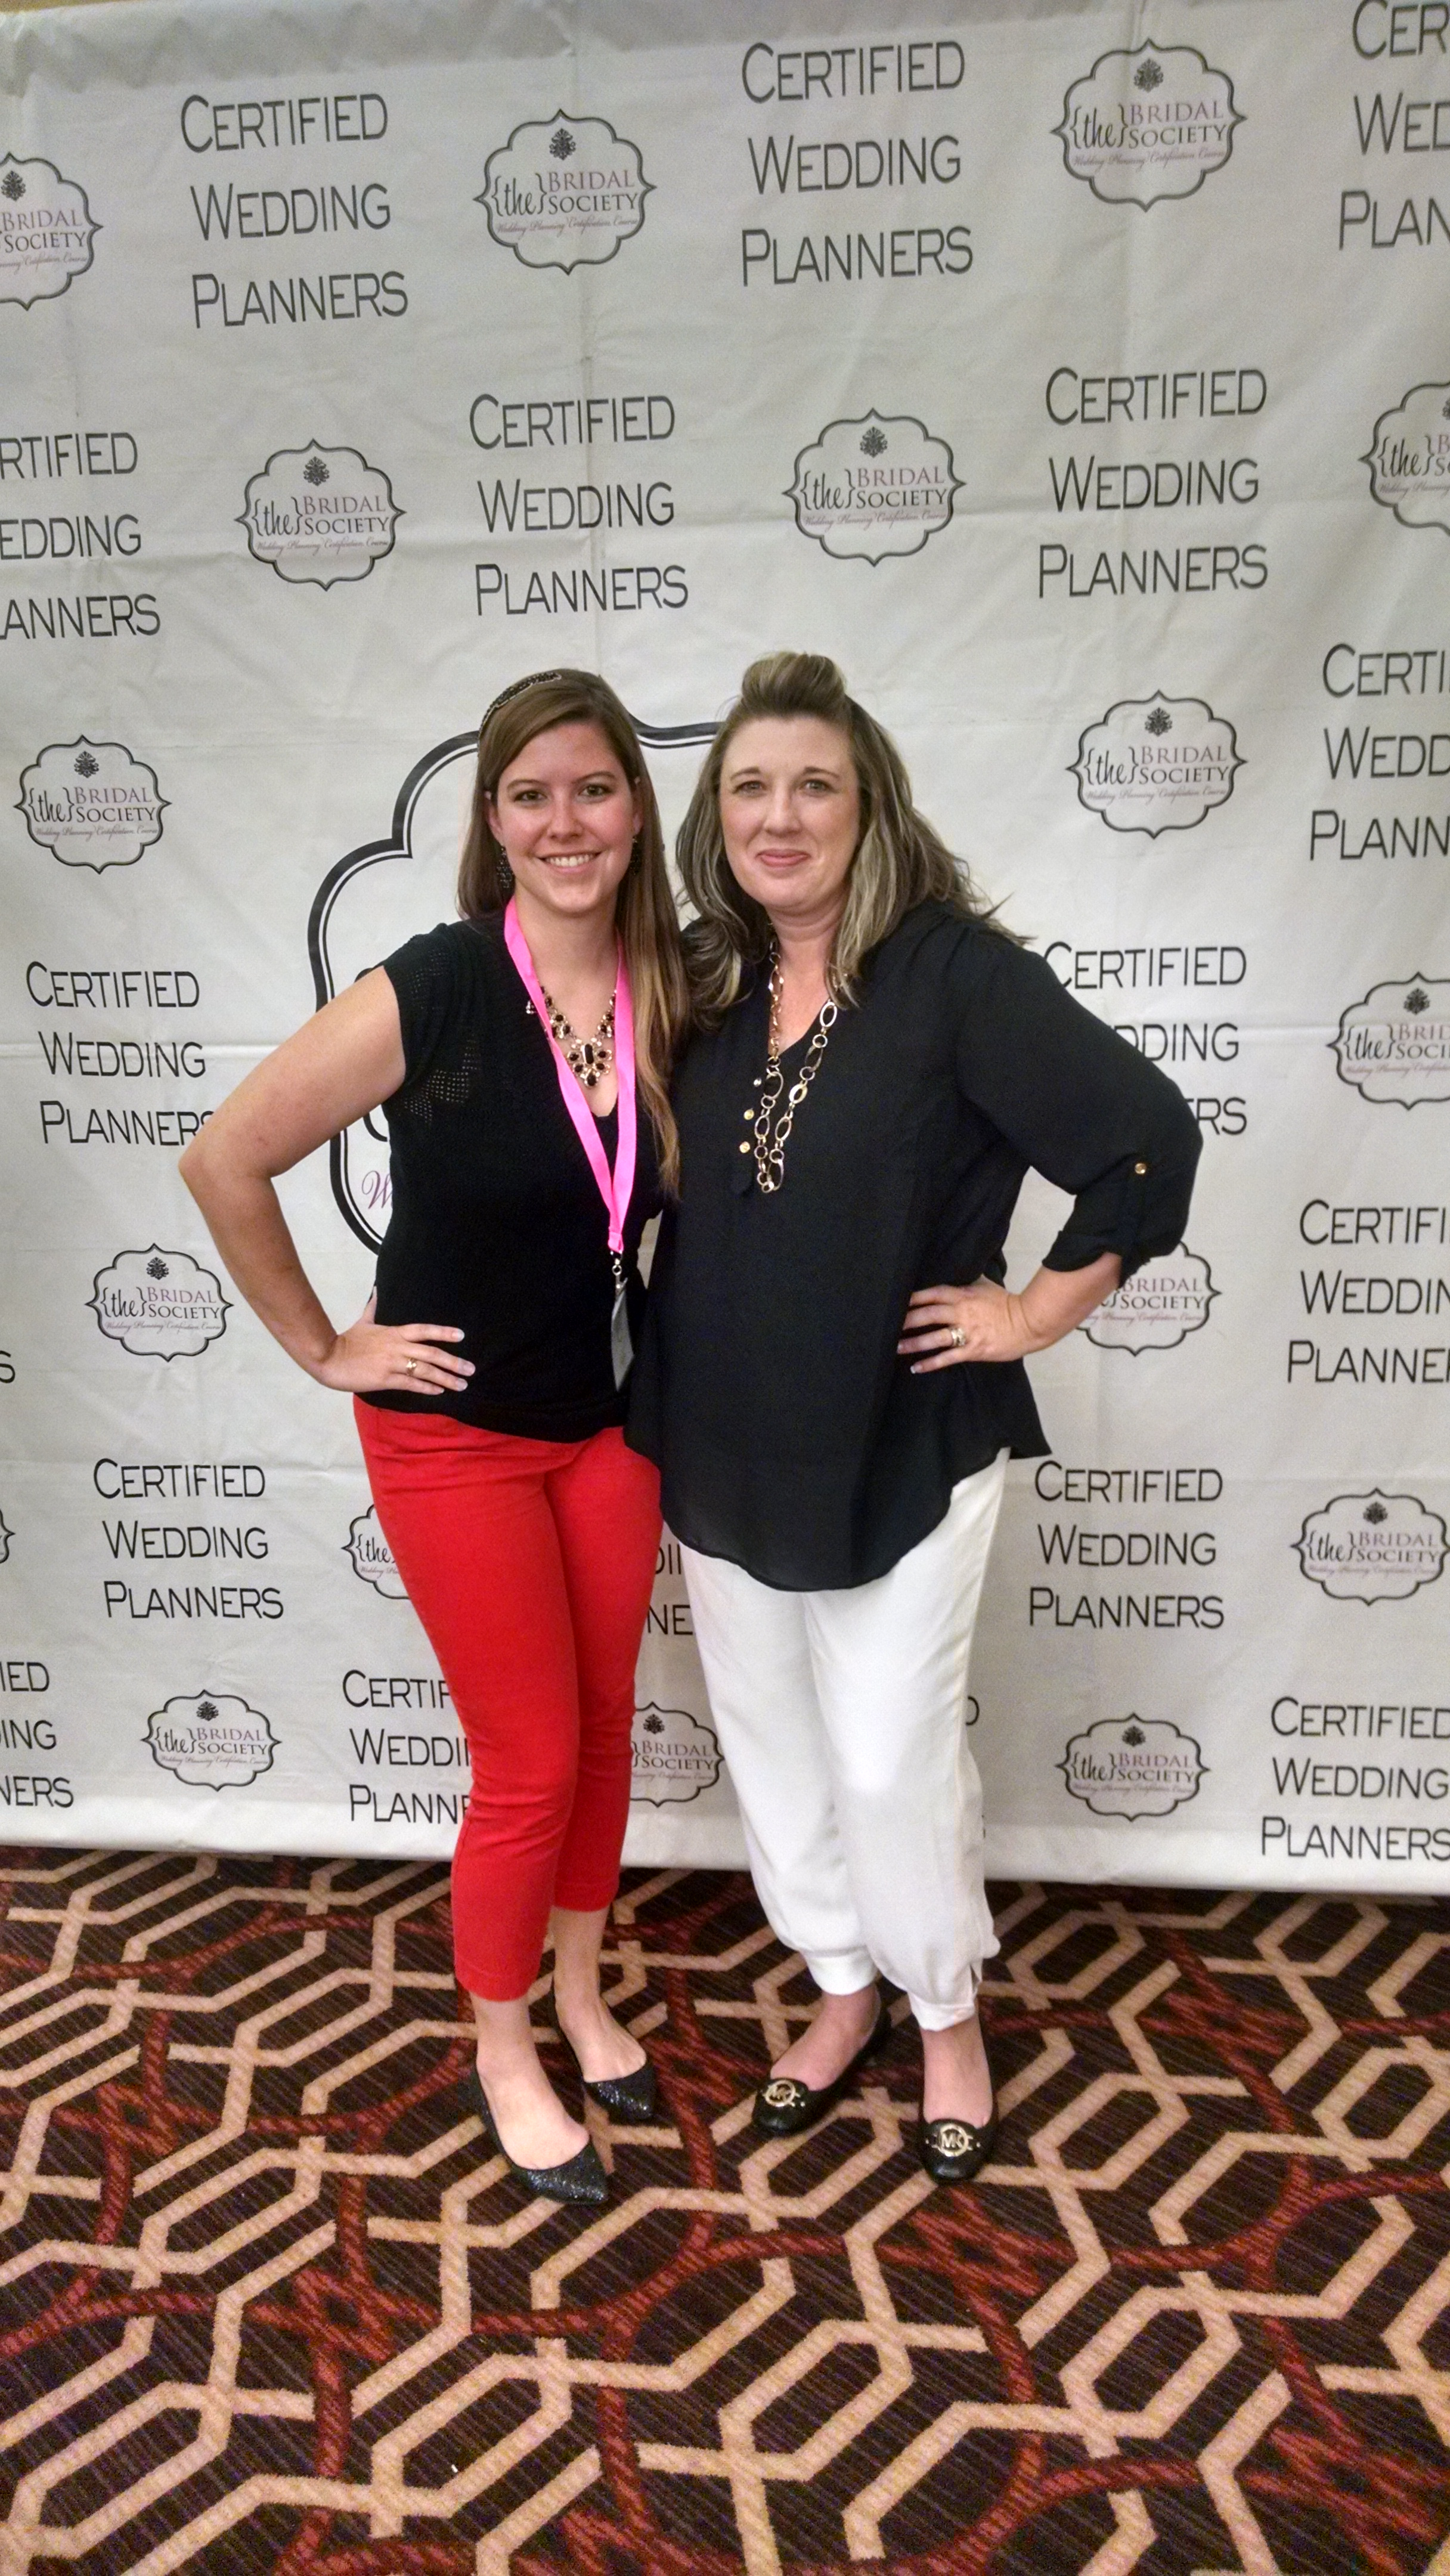 Laurie Hartwell, Wedding Planner Extraordinaire and Most Enjoyable Teacher Ever and me near the end of Day 2!